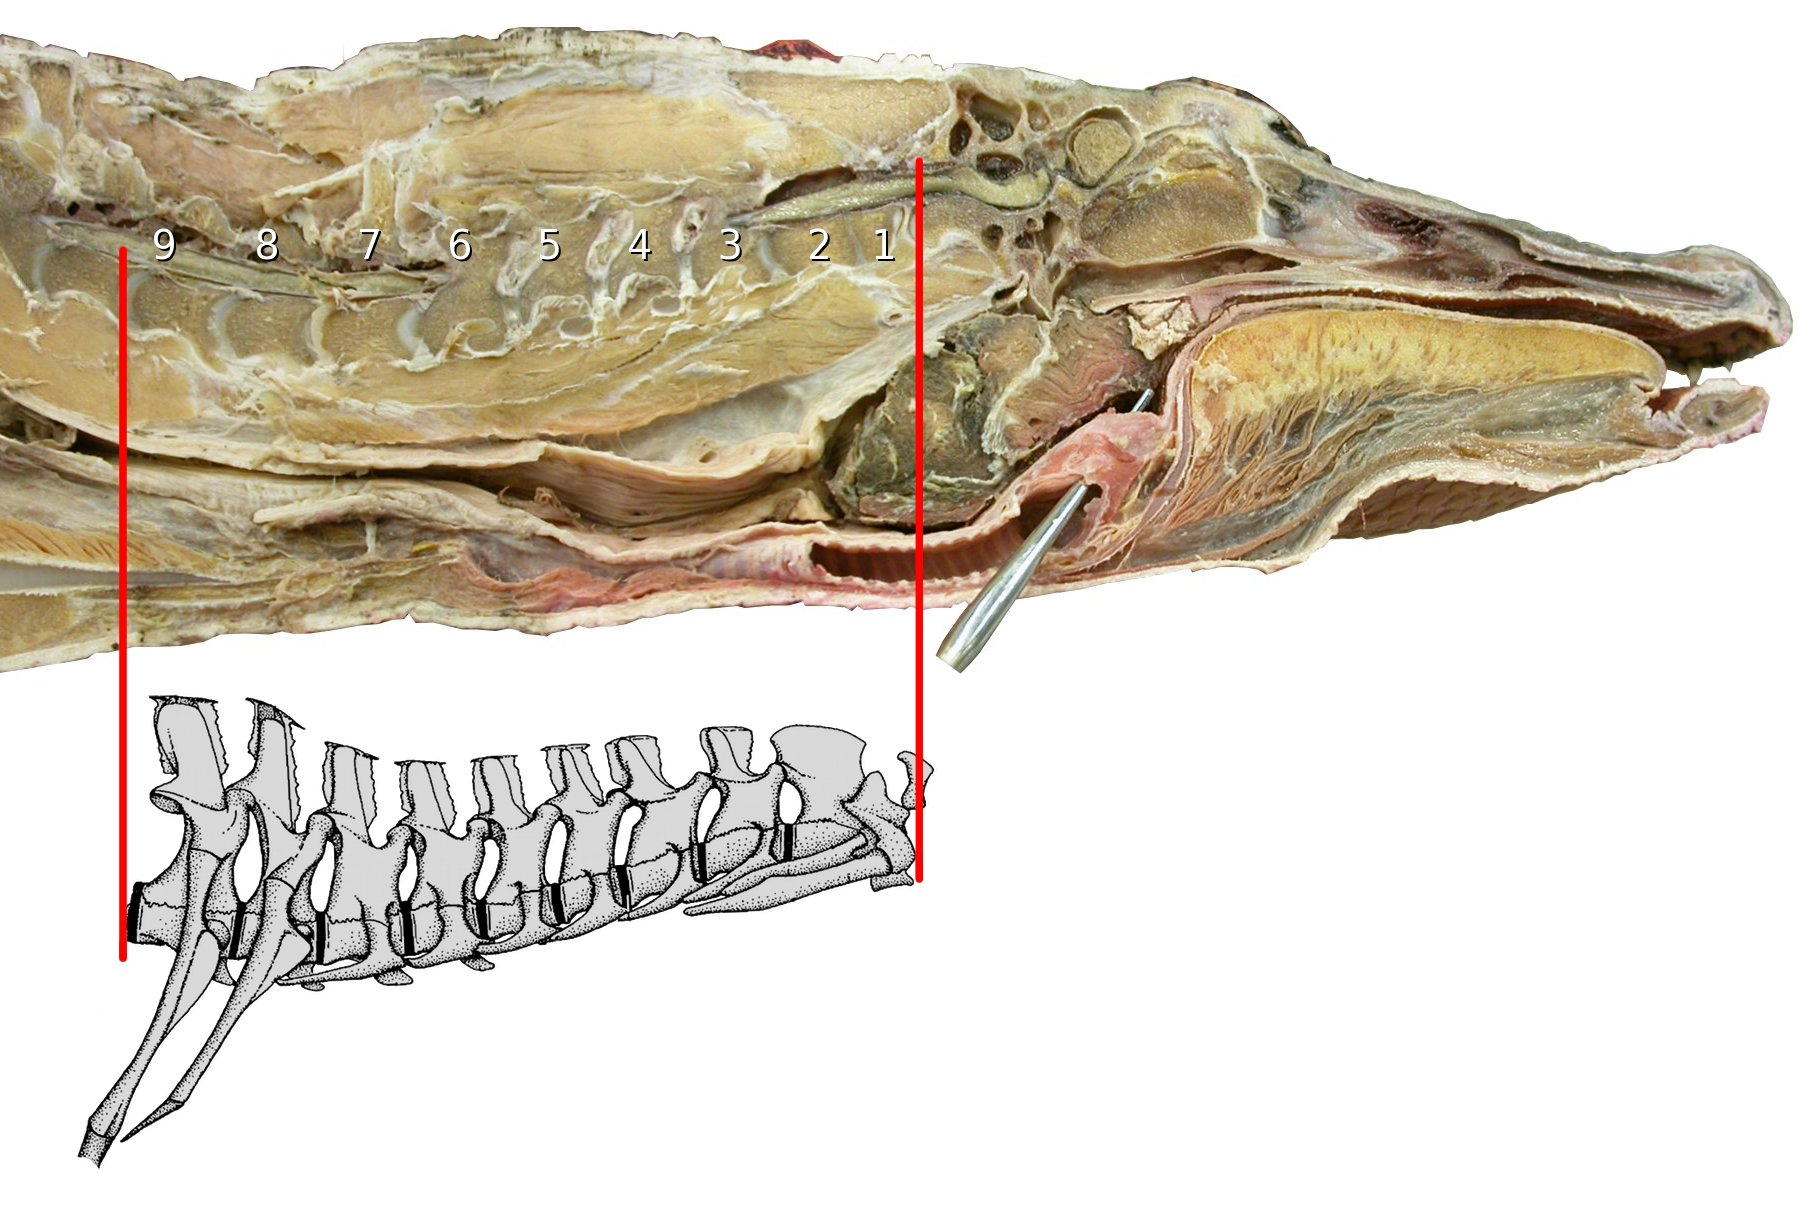 hight resolution of alligator head and neck sagittally bisected head and neck of american alligator